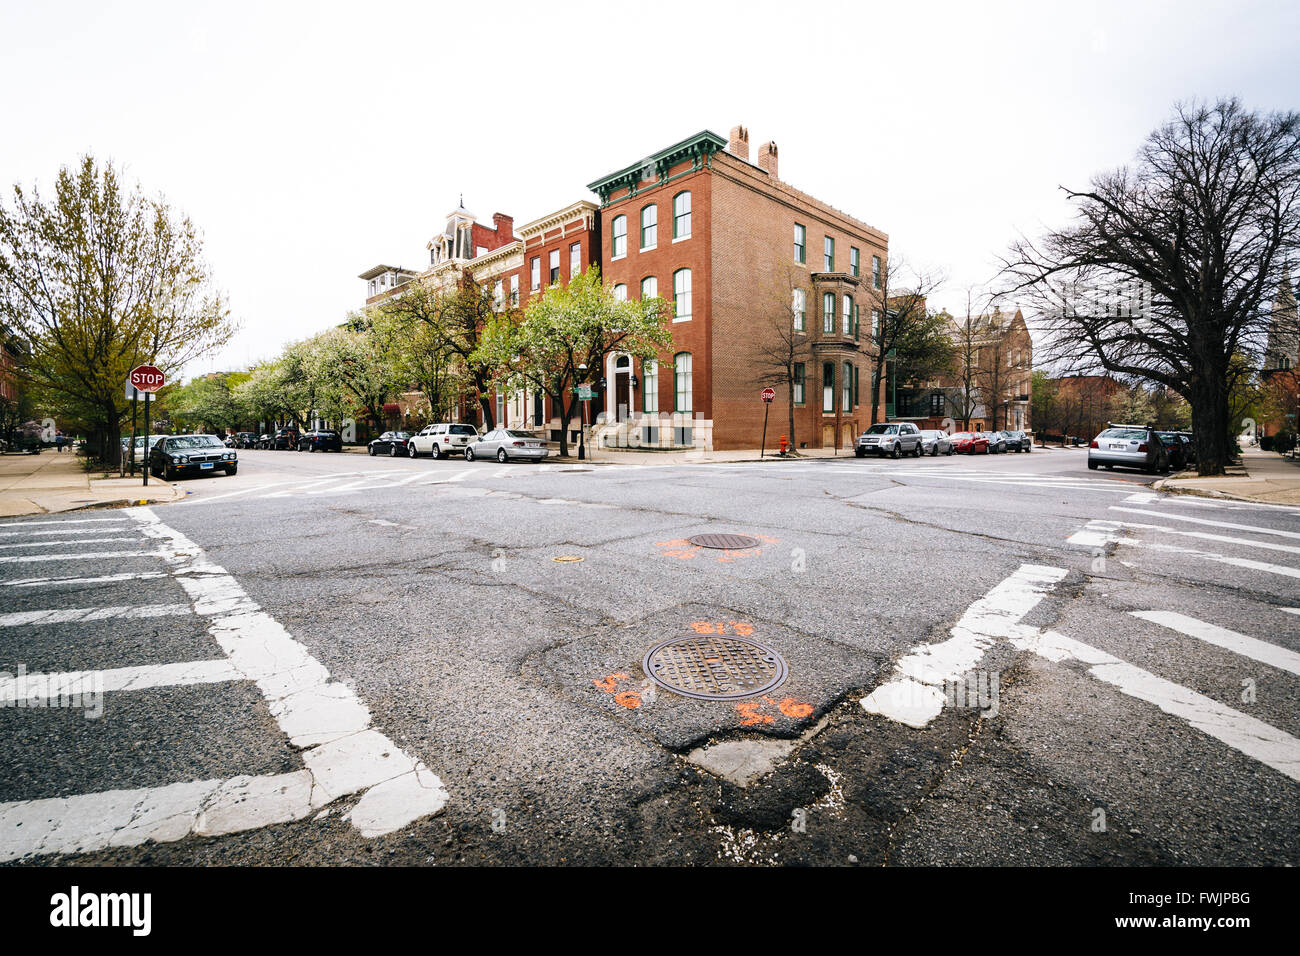 Intersection in Bolton Hill, Baltimore, Maryland. - Stock Image